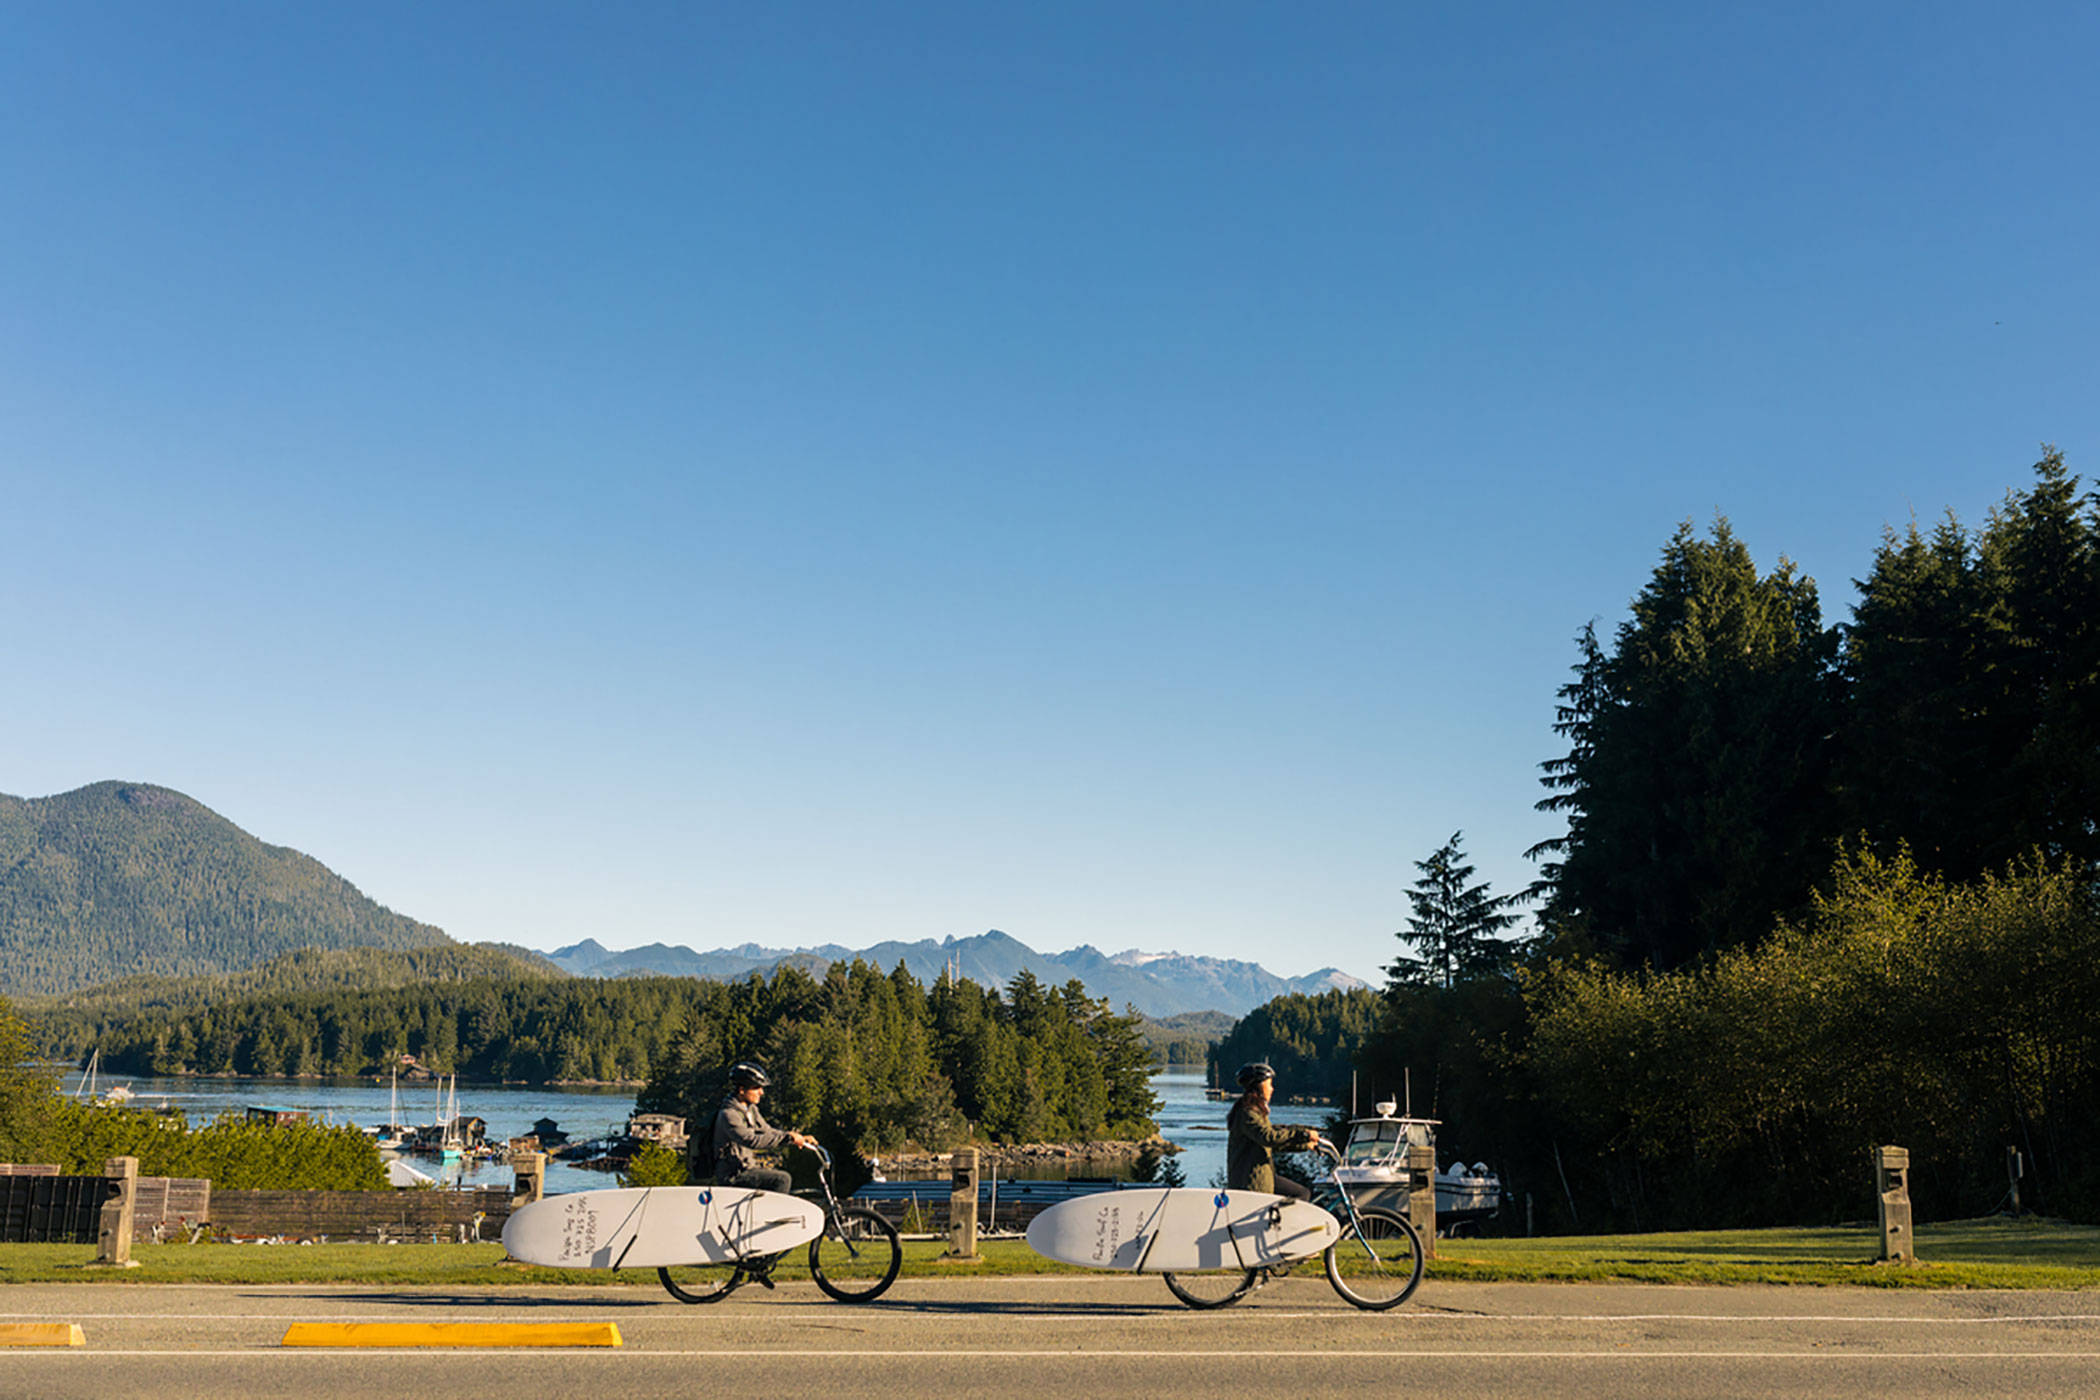 A couple with bikes from Tofino Bike Companyon their way tosurf lessons with Pacific Surf Company | Destination BC/Jordan Dyck